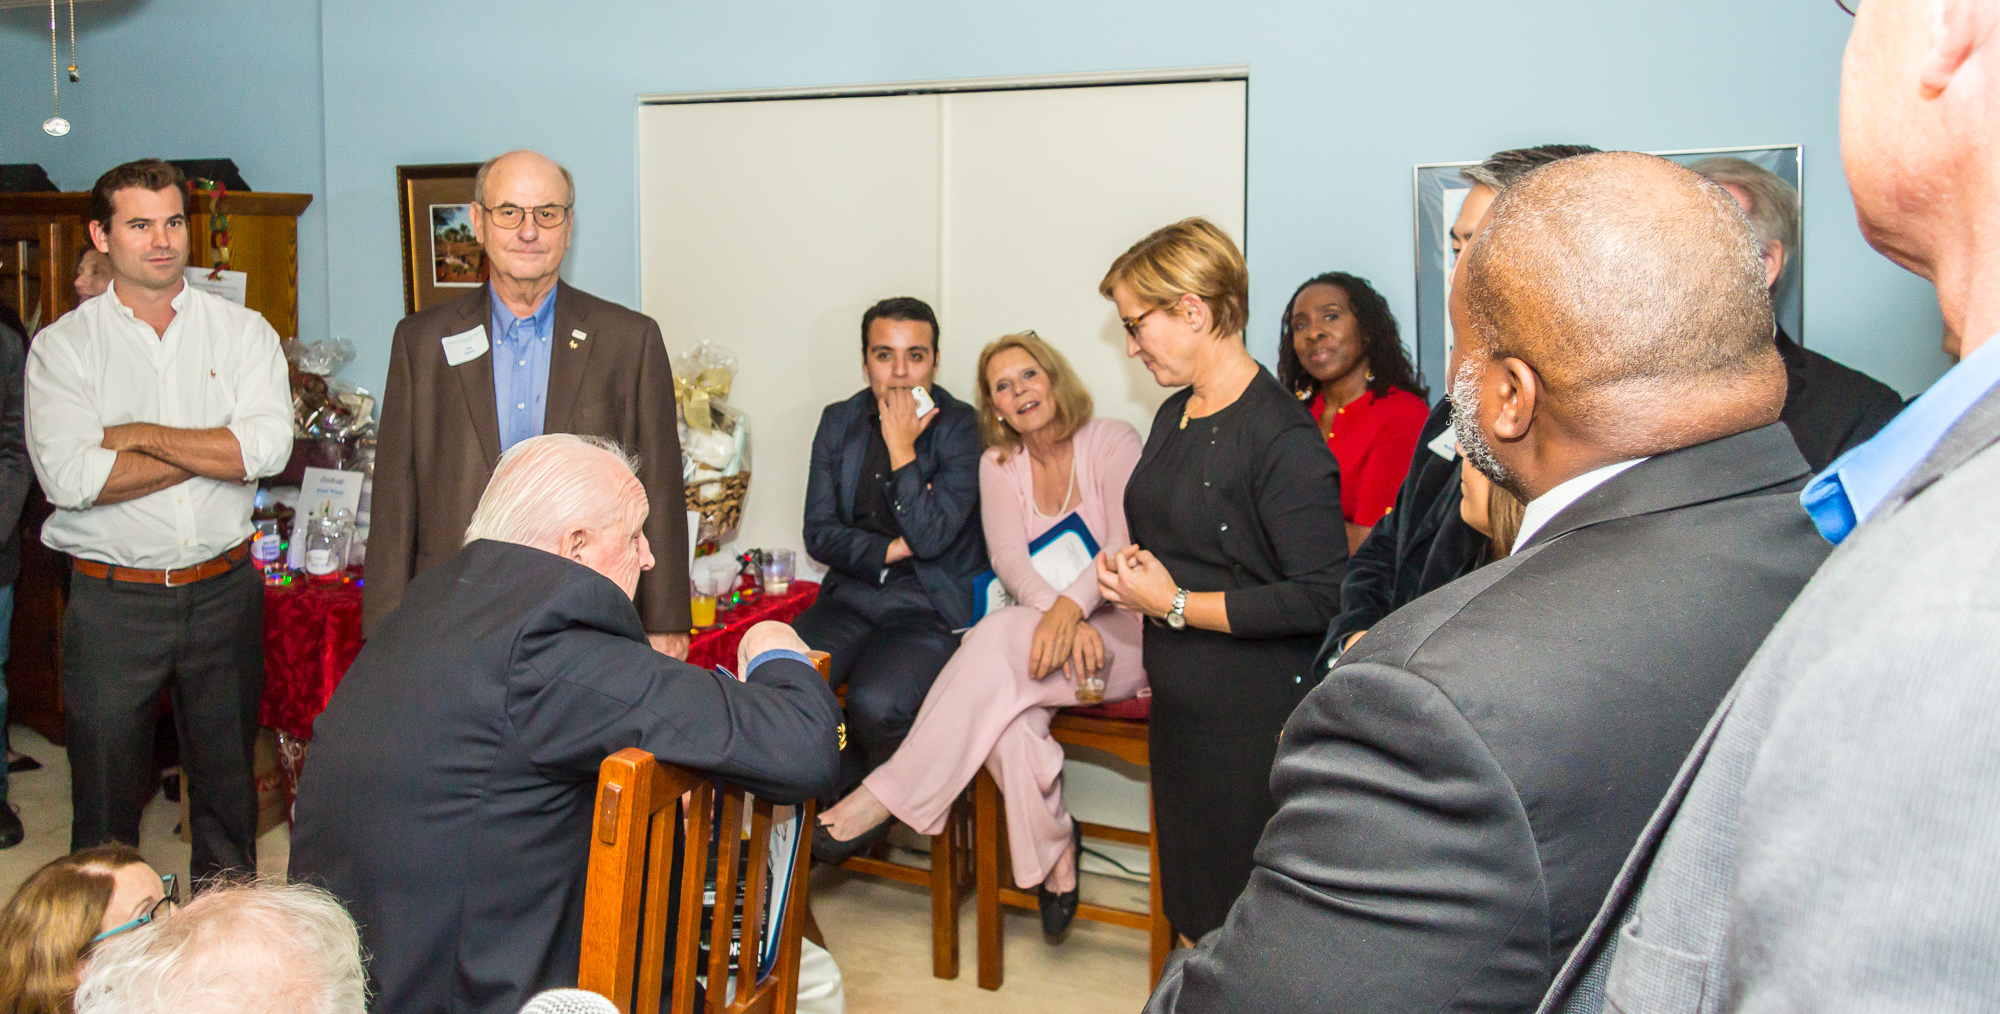 Westchester-Playa Democratic Club Holiday Party 2015 -43.jpg